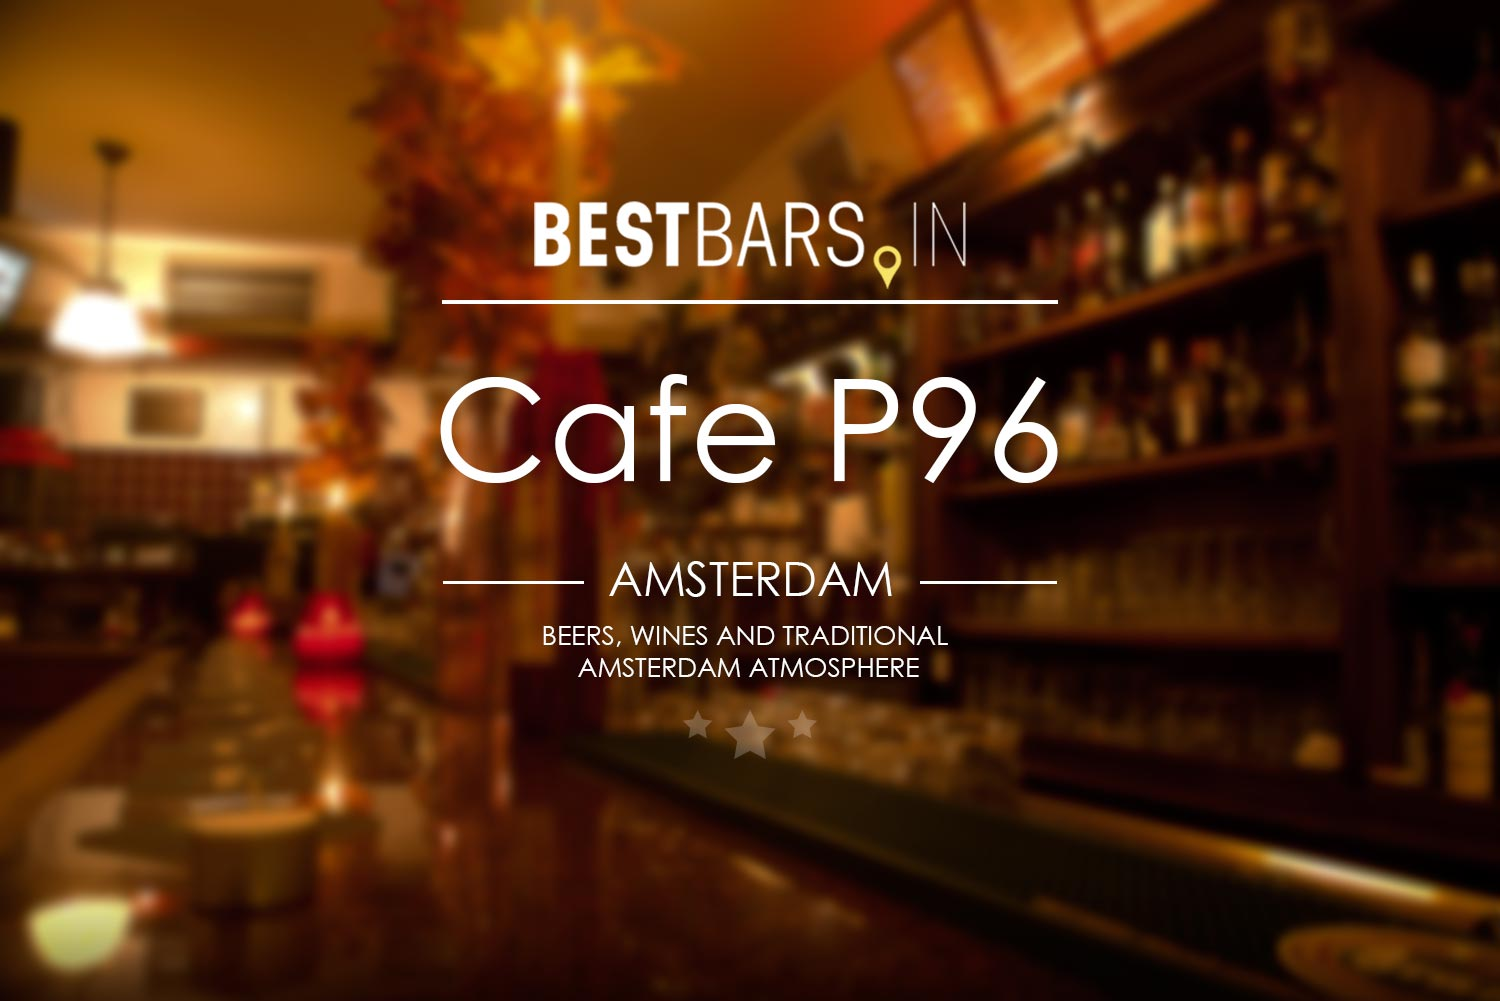 Cafe P96 - traditional Amsterdam bar